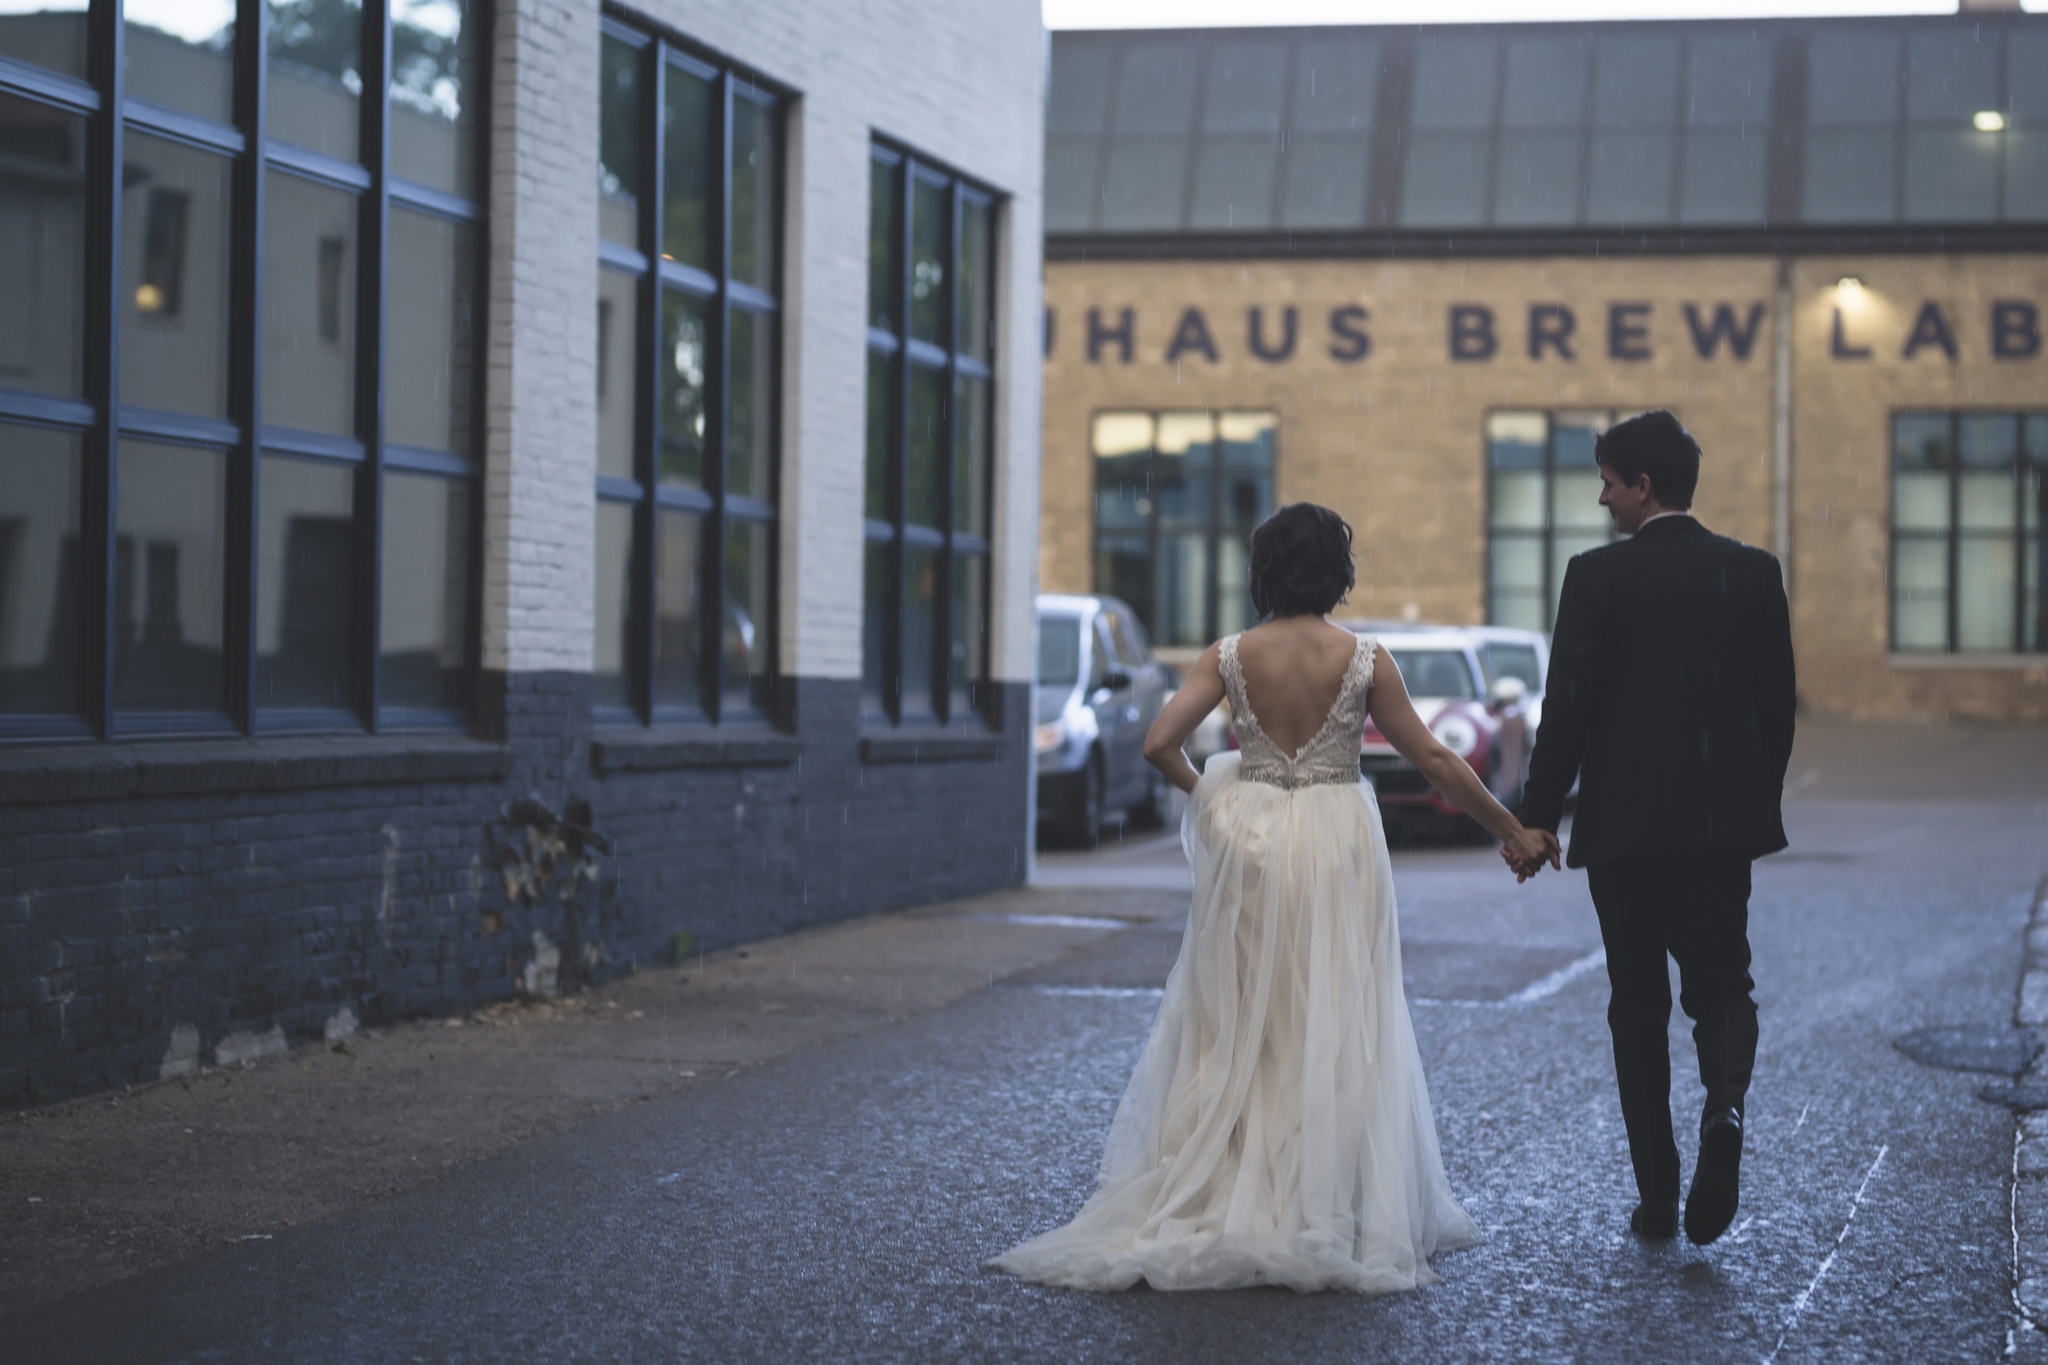 132 bauhaus brewery northeast minneapolis wedding photographer.jpg